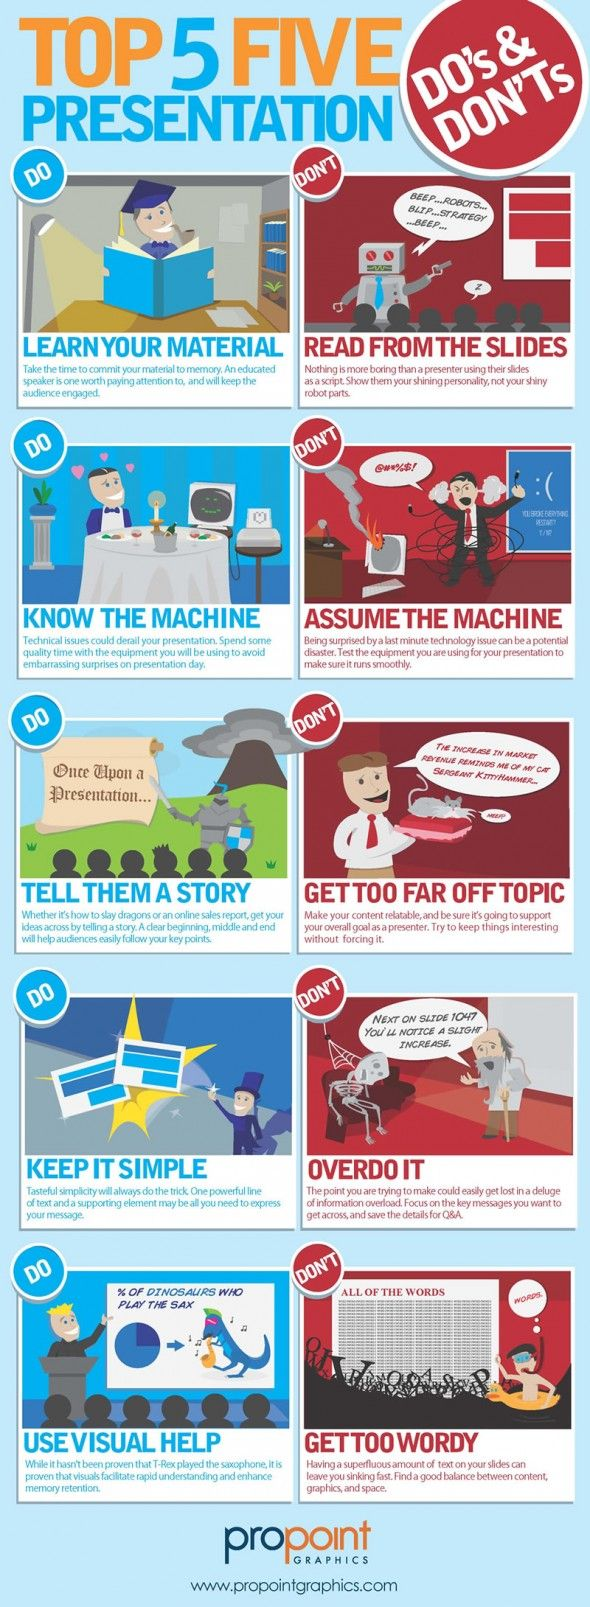 Public speaking isn't necessarily every student's favorite thing. Check out this infographic for great tips on presentations!